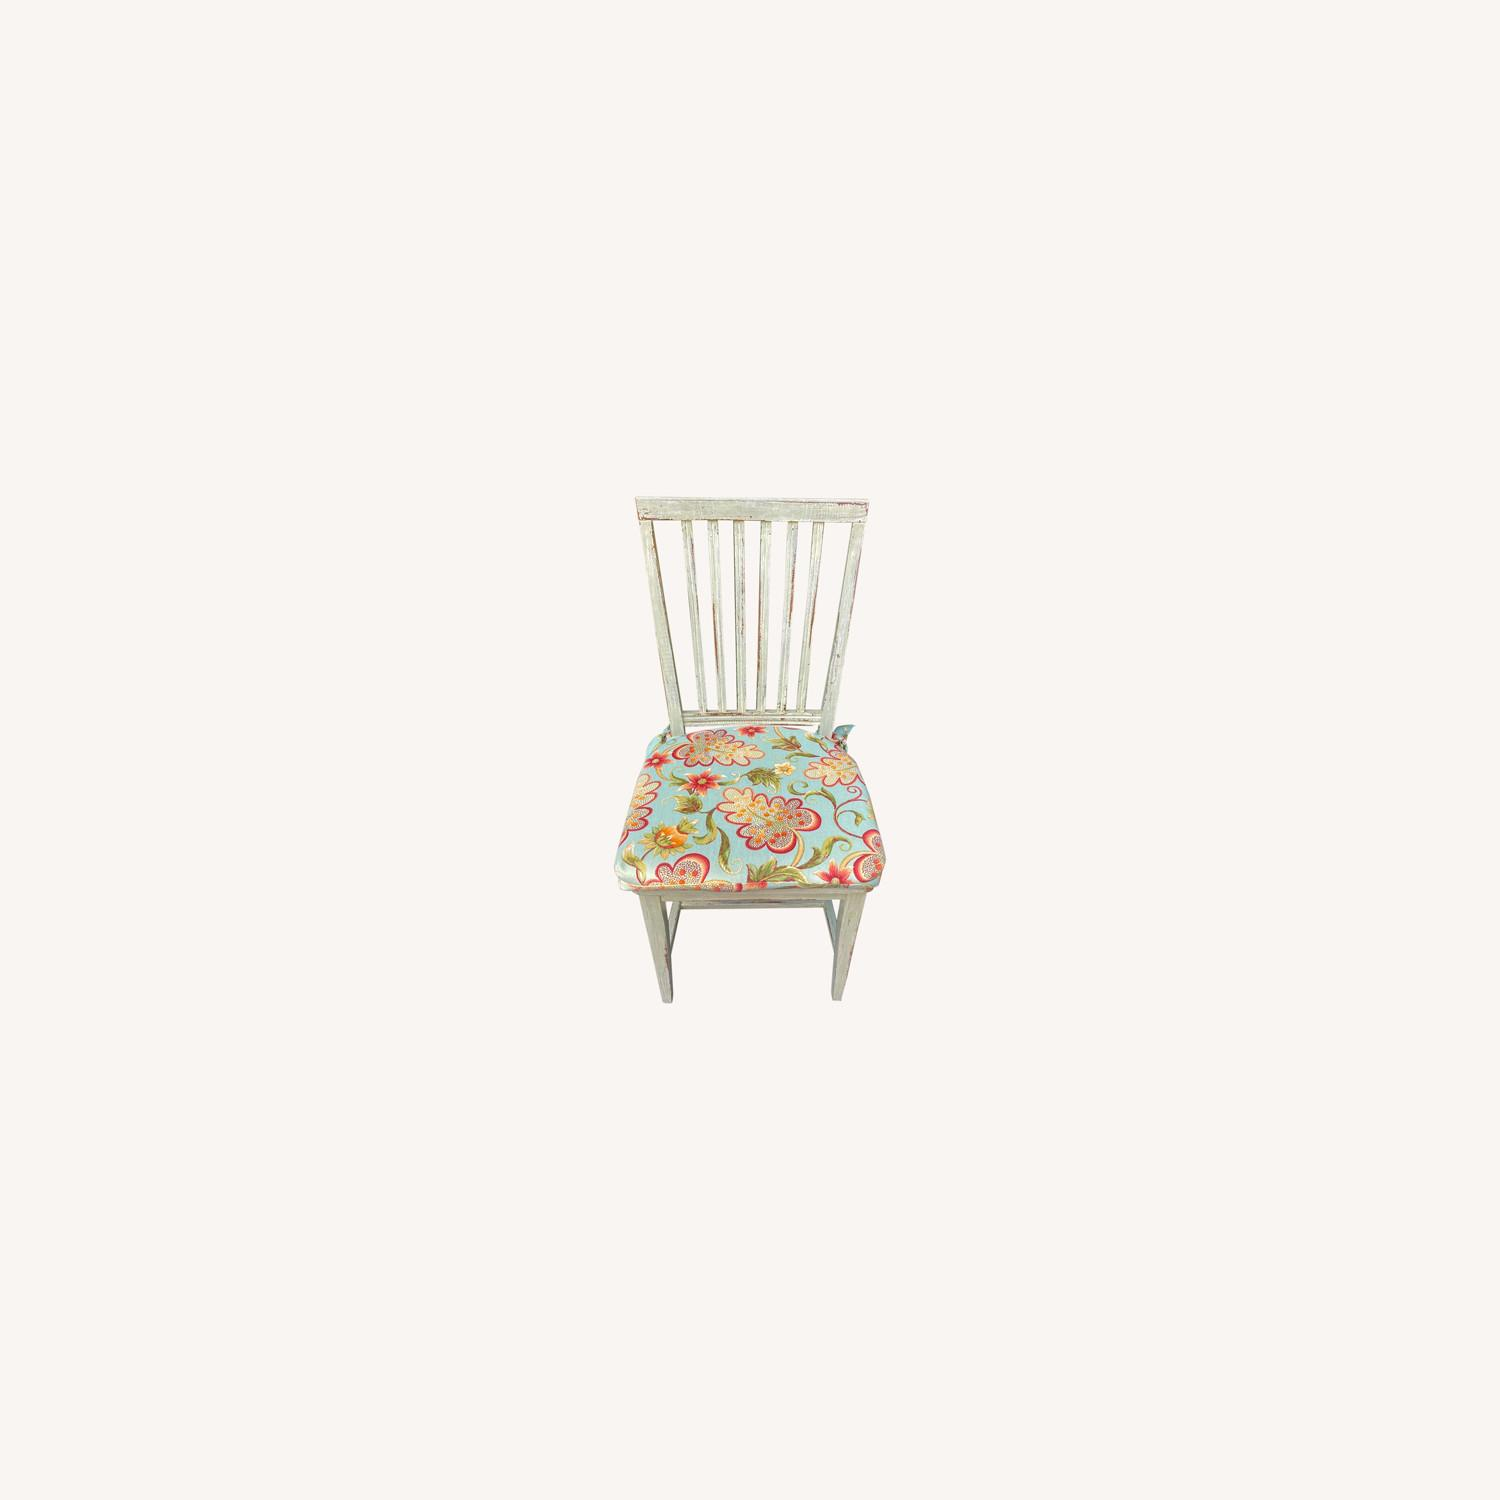 Patterned Dining Chair Pads - image-0